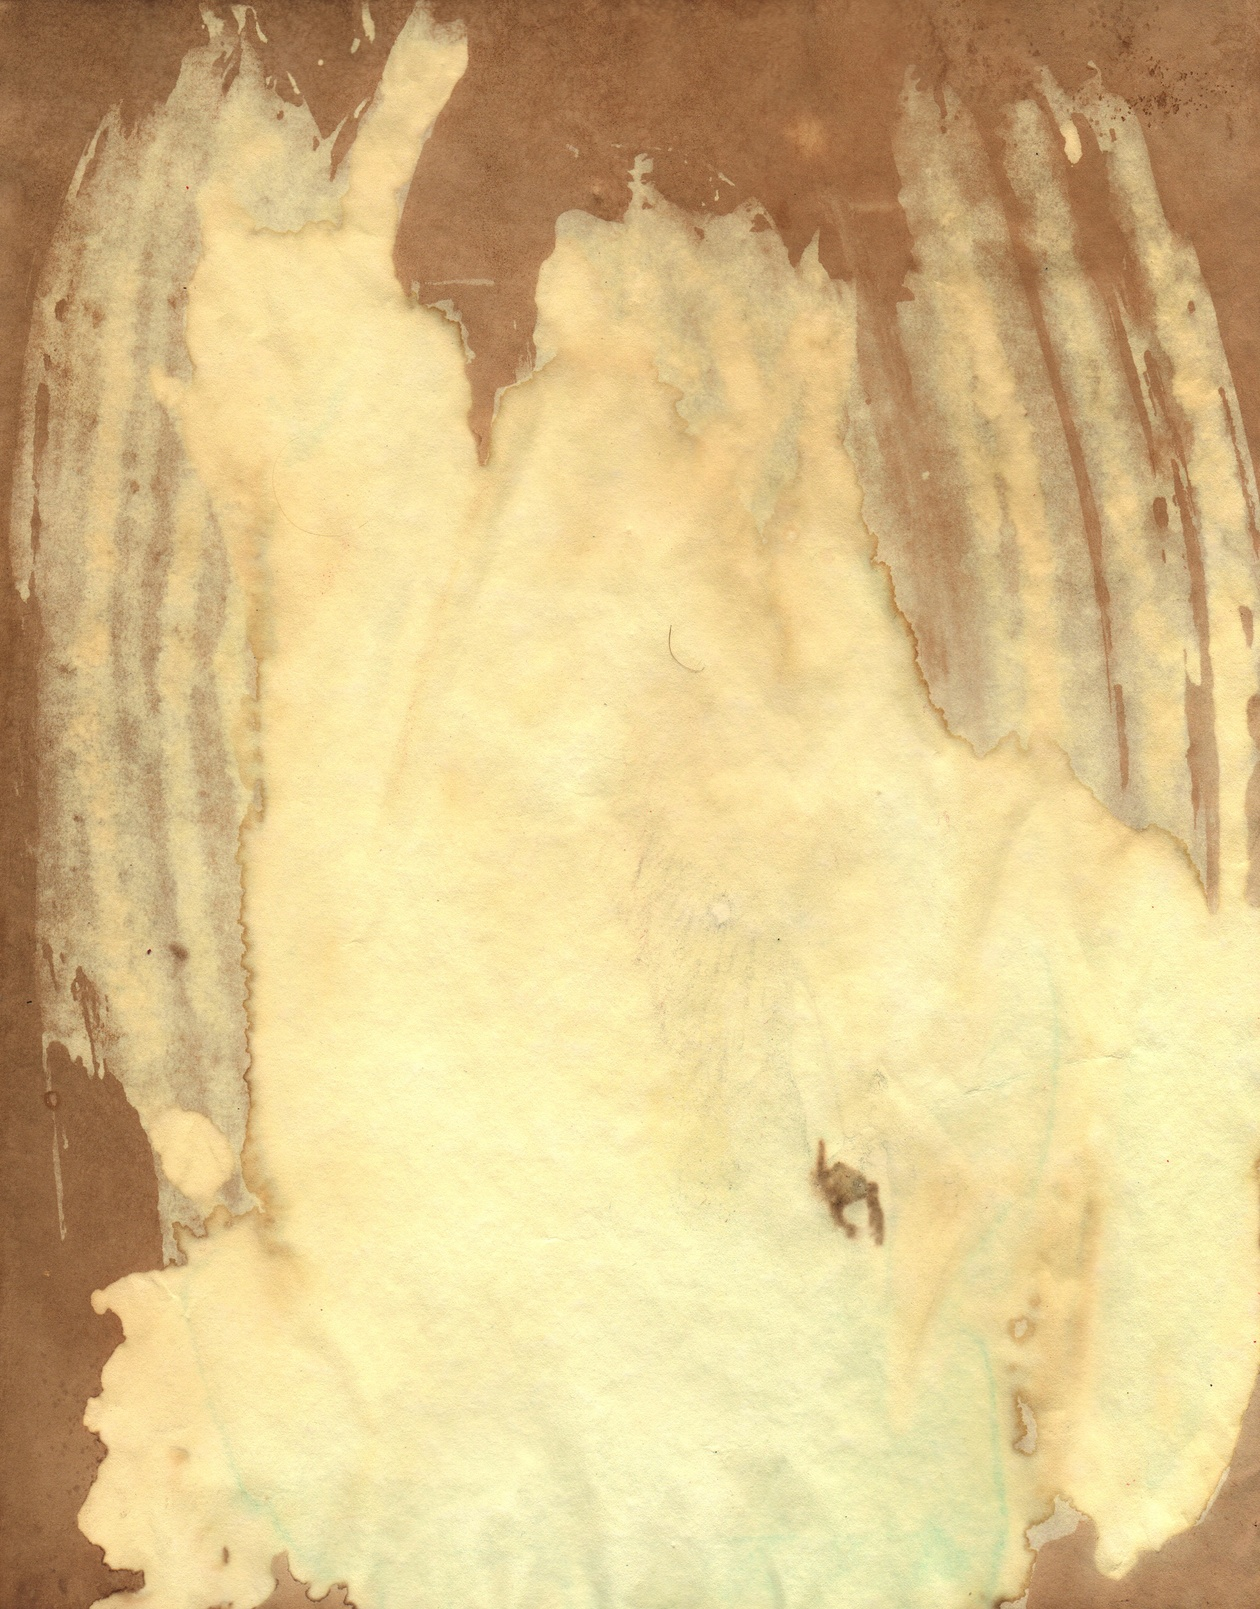 Bleached paper texture Photoshop brush